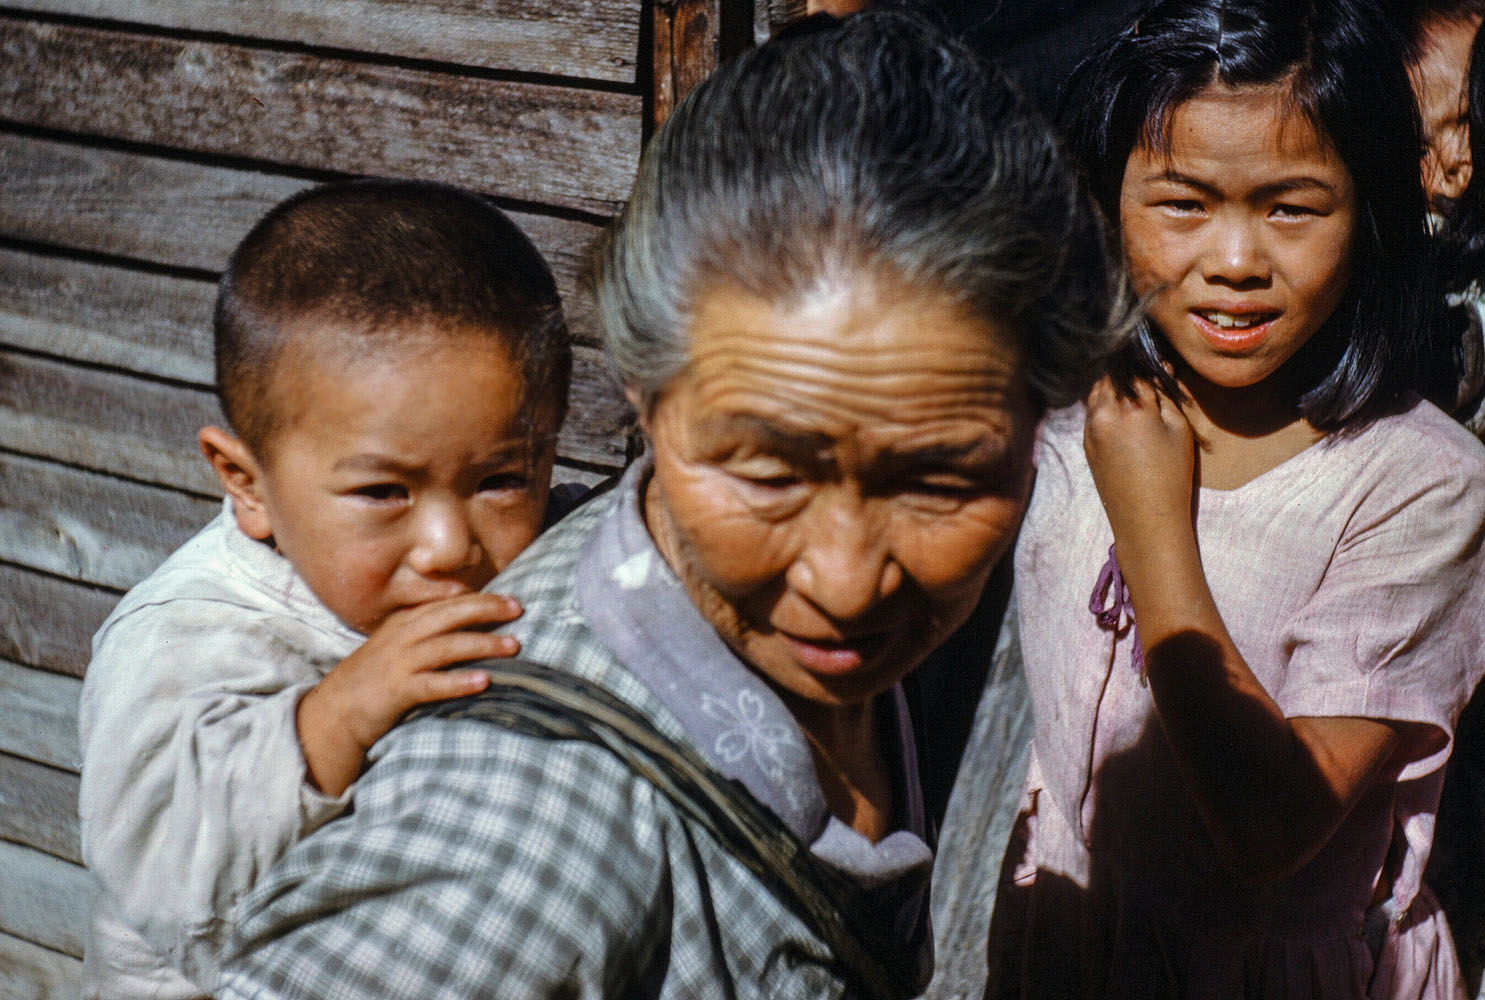 101 Older Woman with Baby on Back, Young Girl